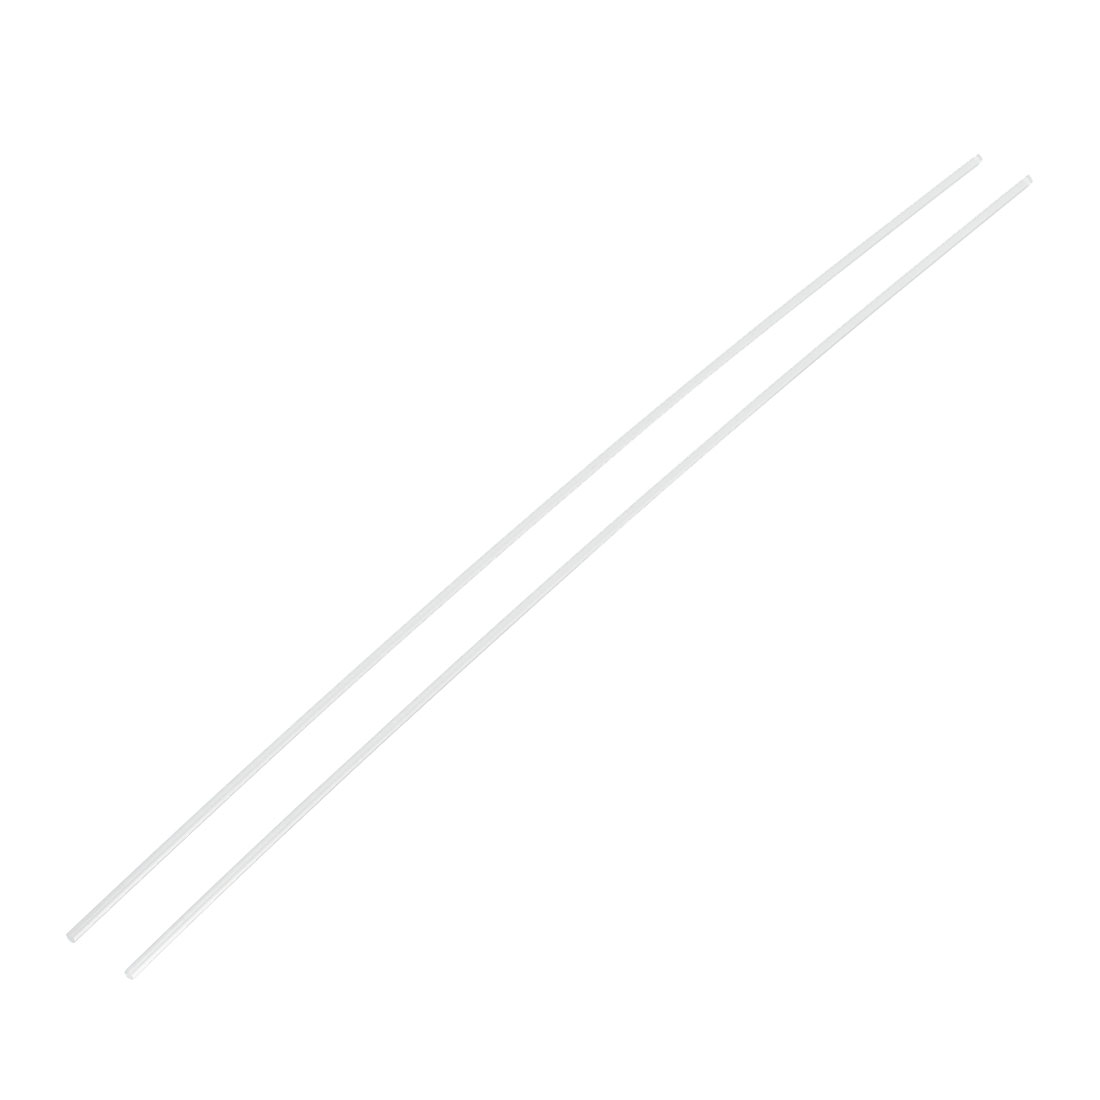 2mmx250mm Round Shape Solid Acrylic Rod PMMA Extruded Bar Clear 2pcs